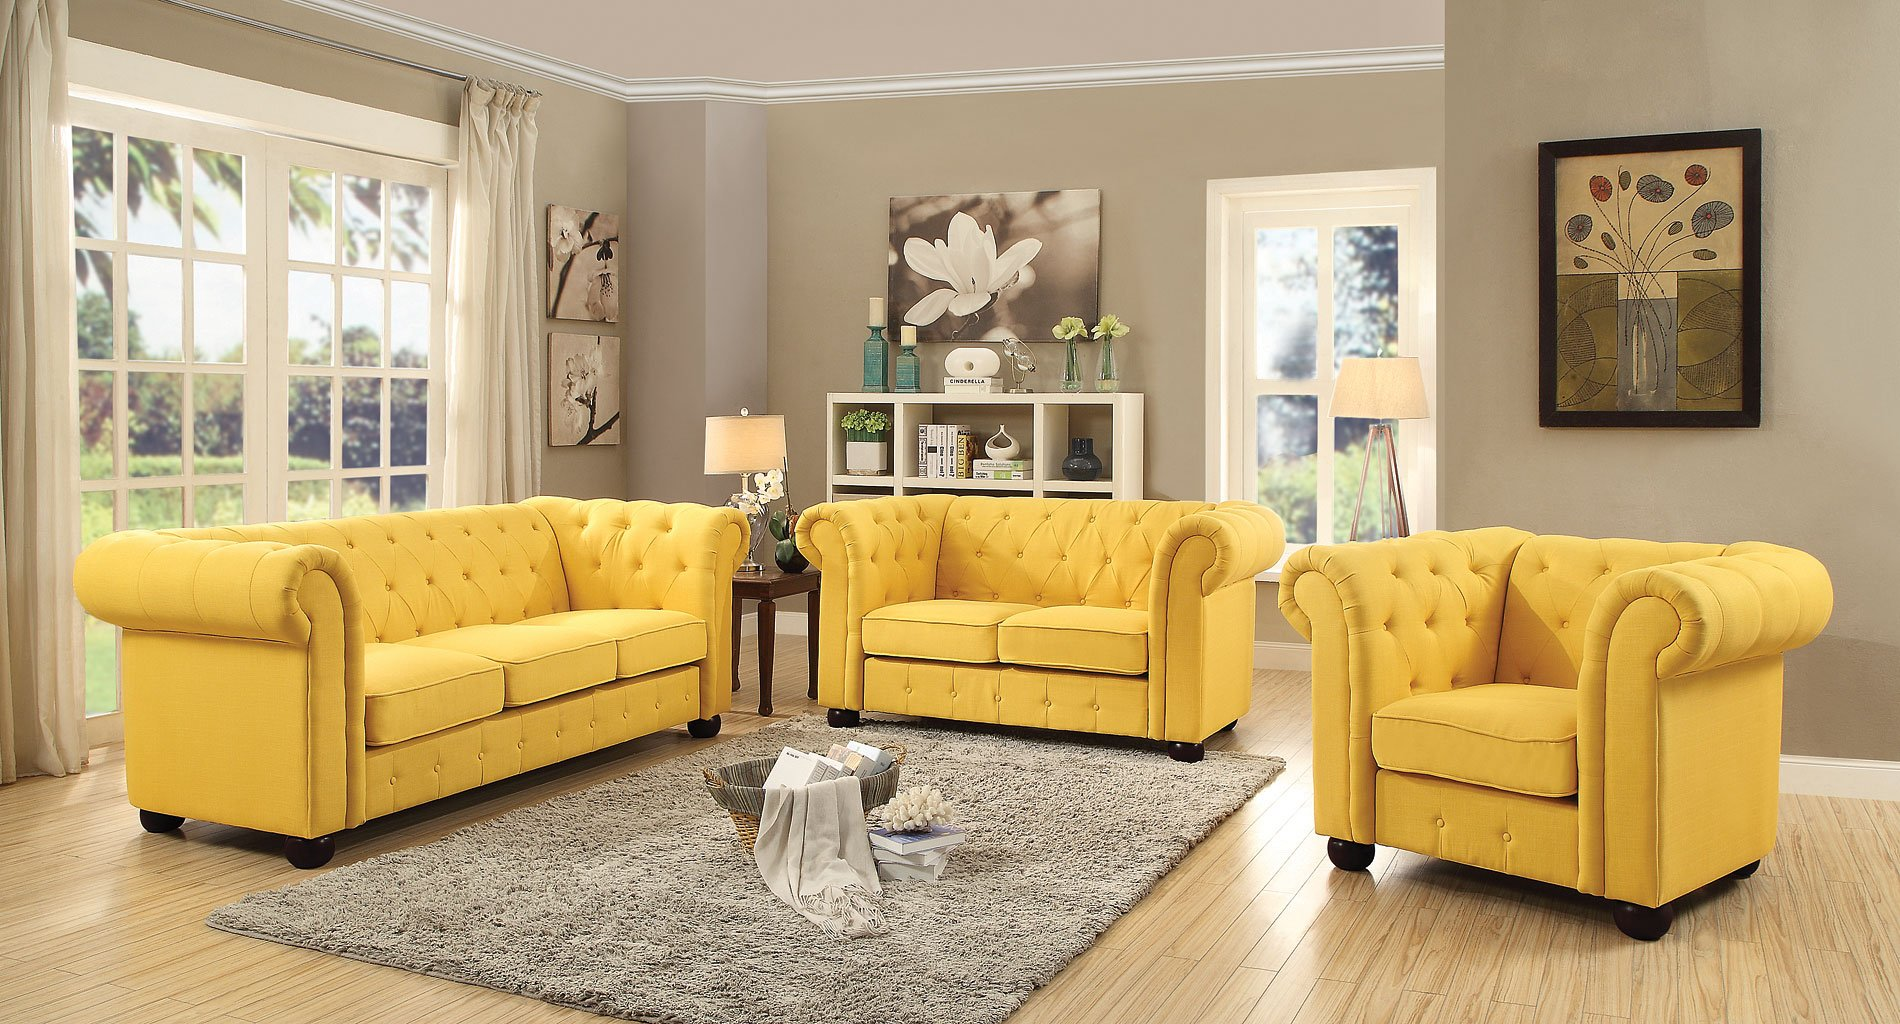 G497 tufted living room set yellow living room sets Furniture for yellow living rooms